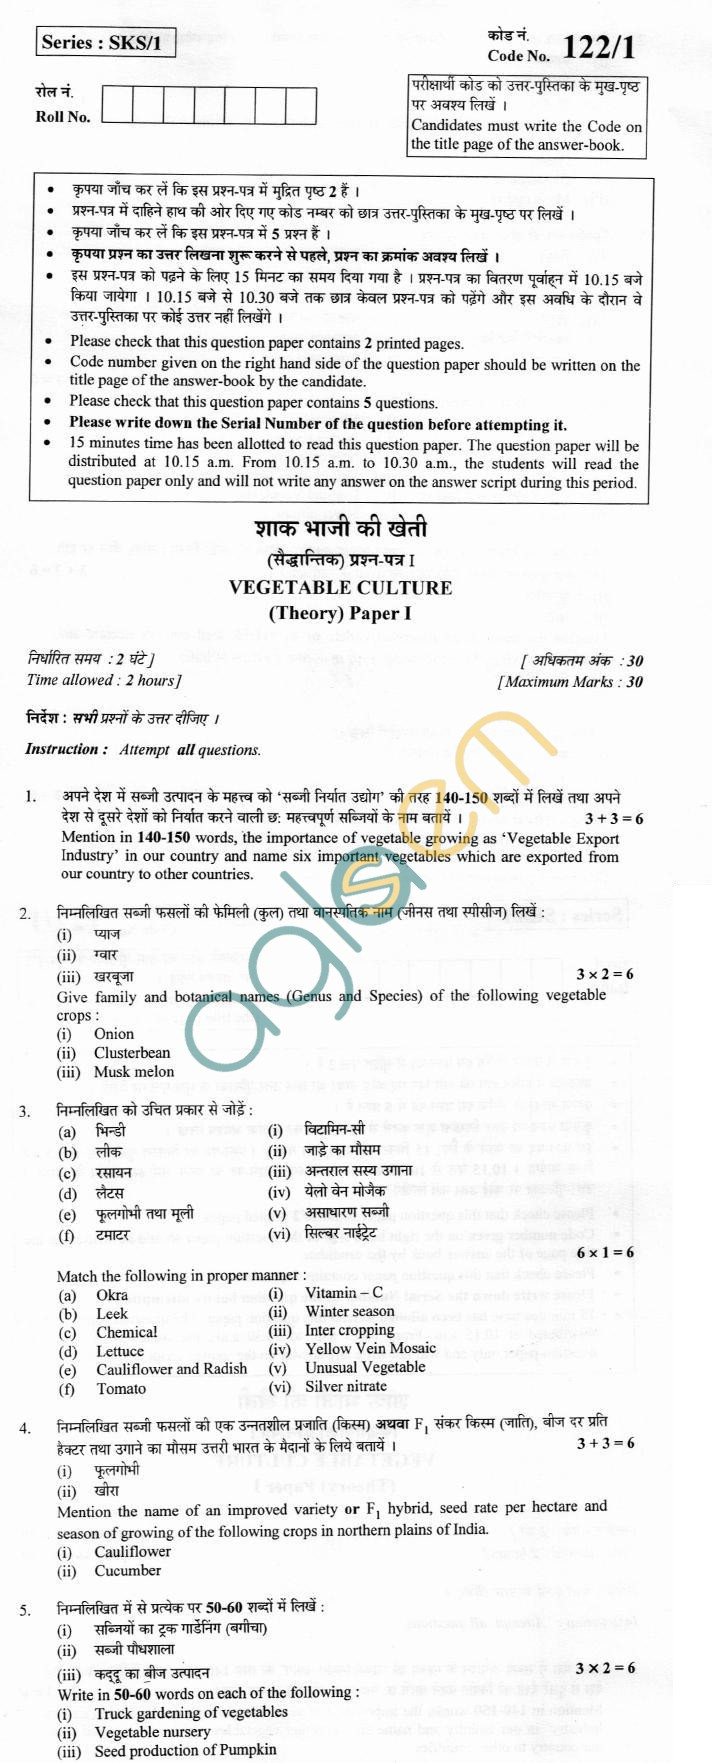 CBSE Board Exam 2013 Class XII Question Paper -Vegetable Culture (Paper I)